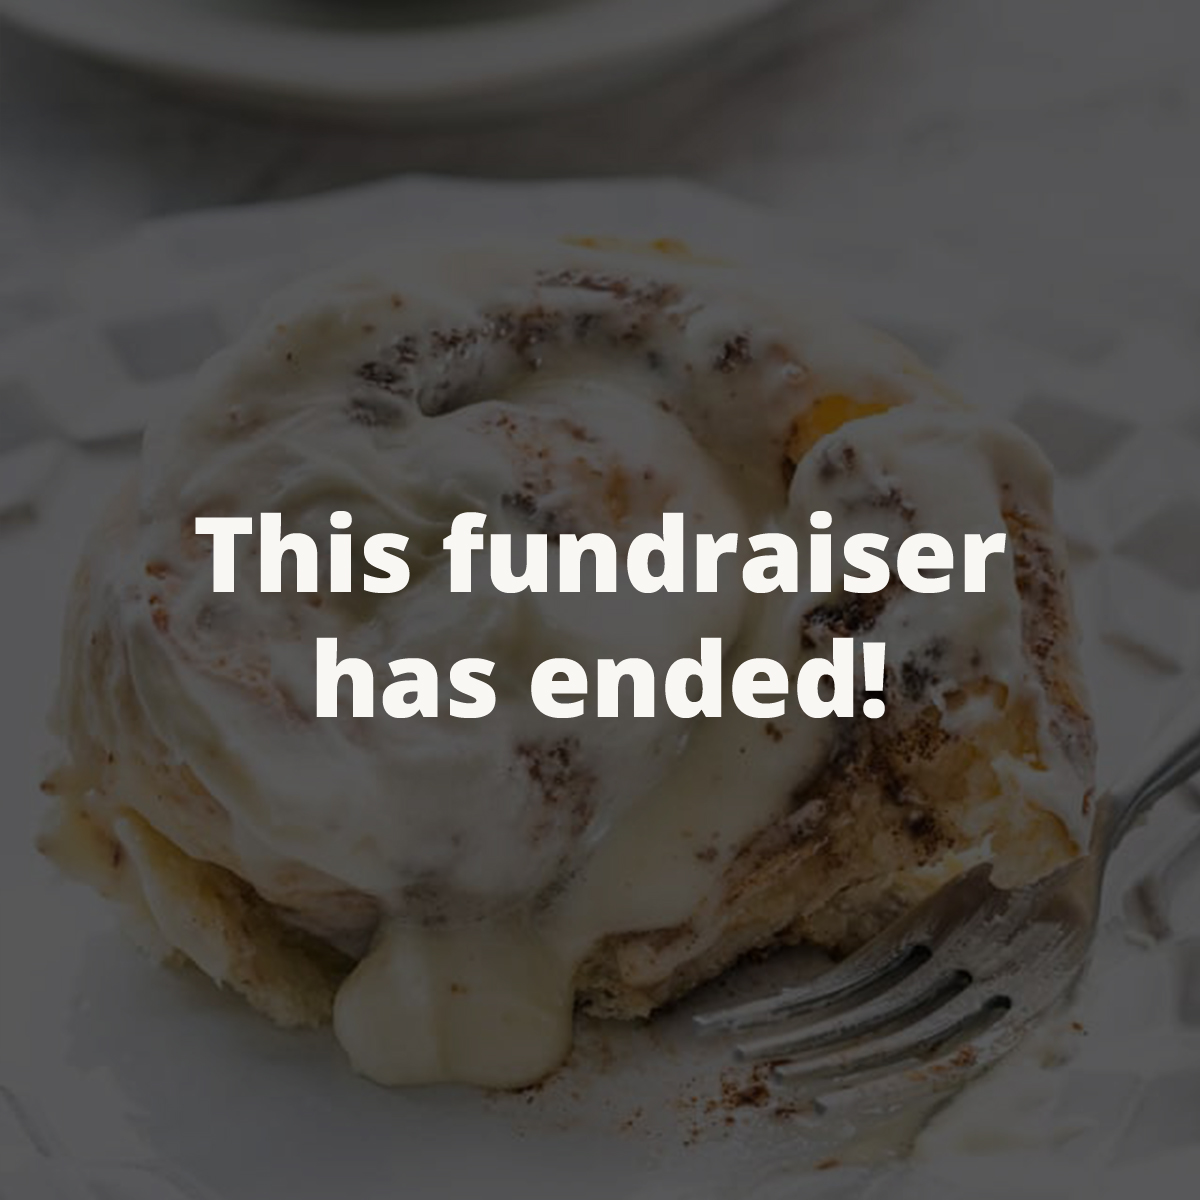 Cinnamon Rolls - Kim sold out for November and December but she will be taking more orders in the new year! Purchase a pan (or 2!) and 100% of your purchase goes to the Robinson family. Stay tuned!